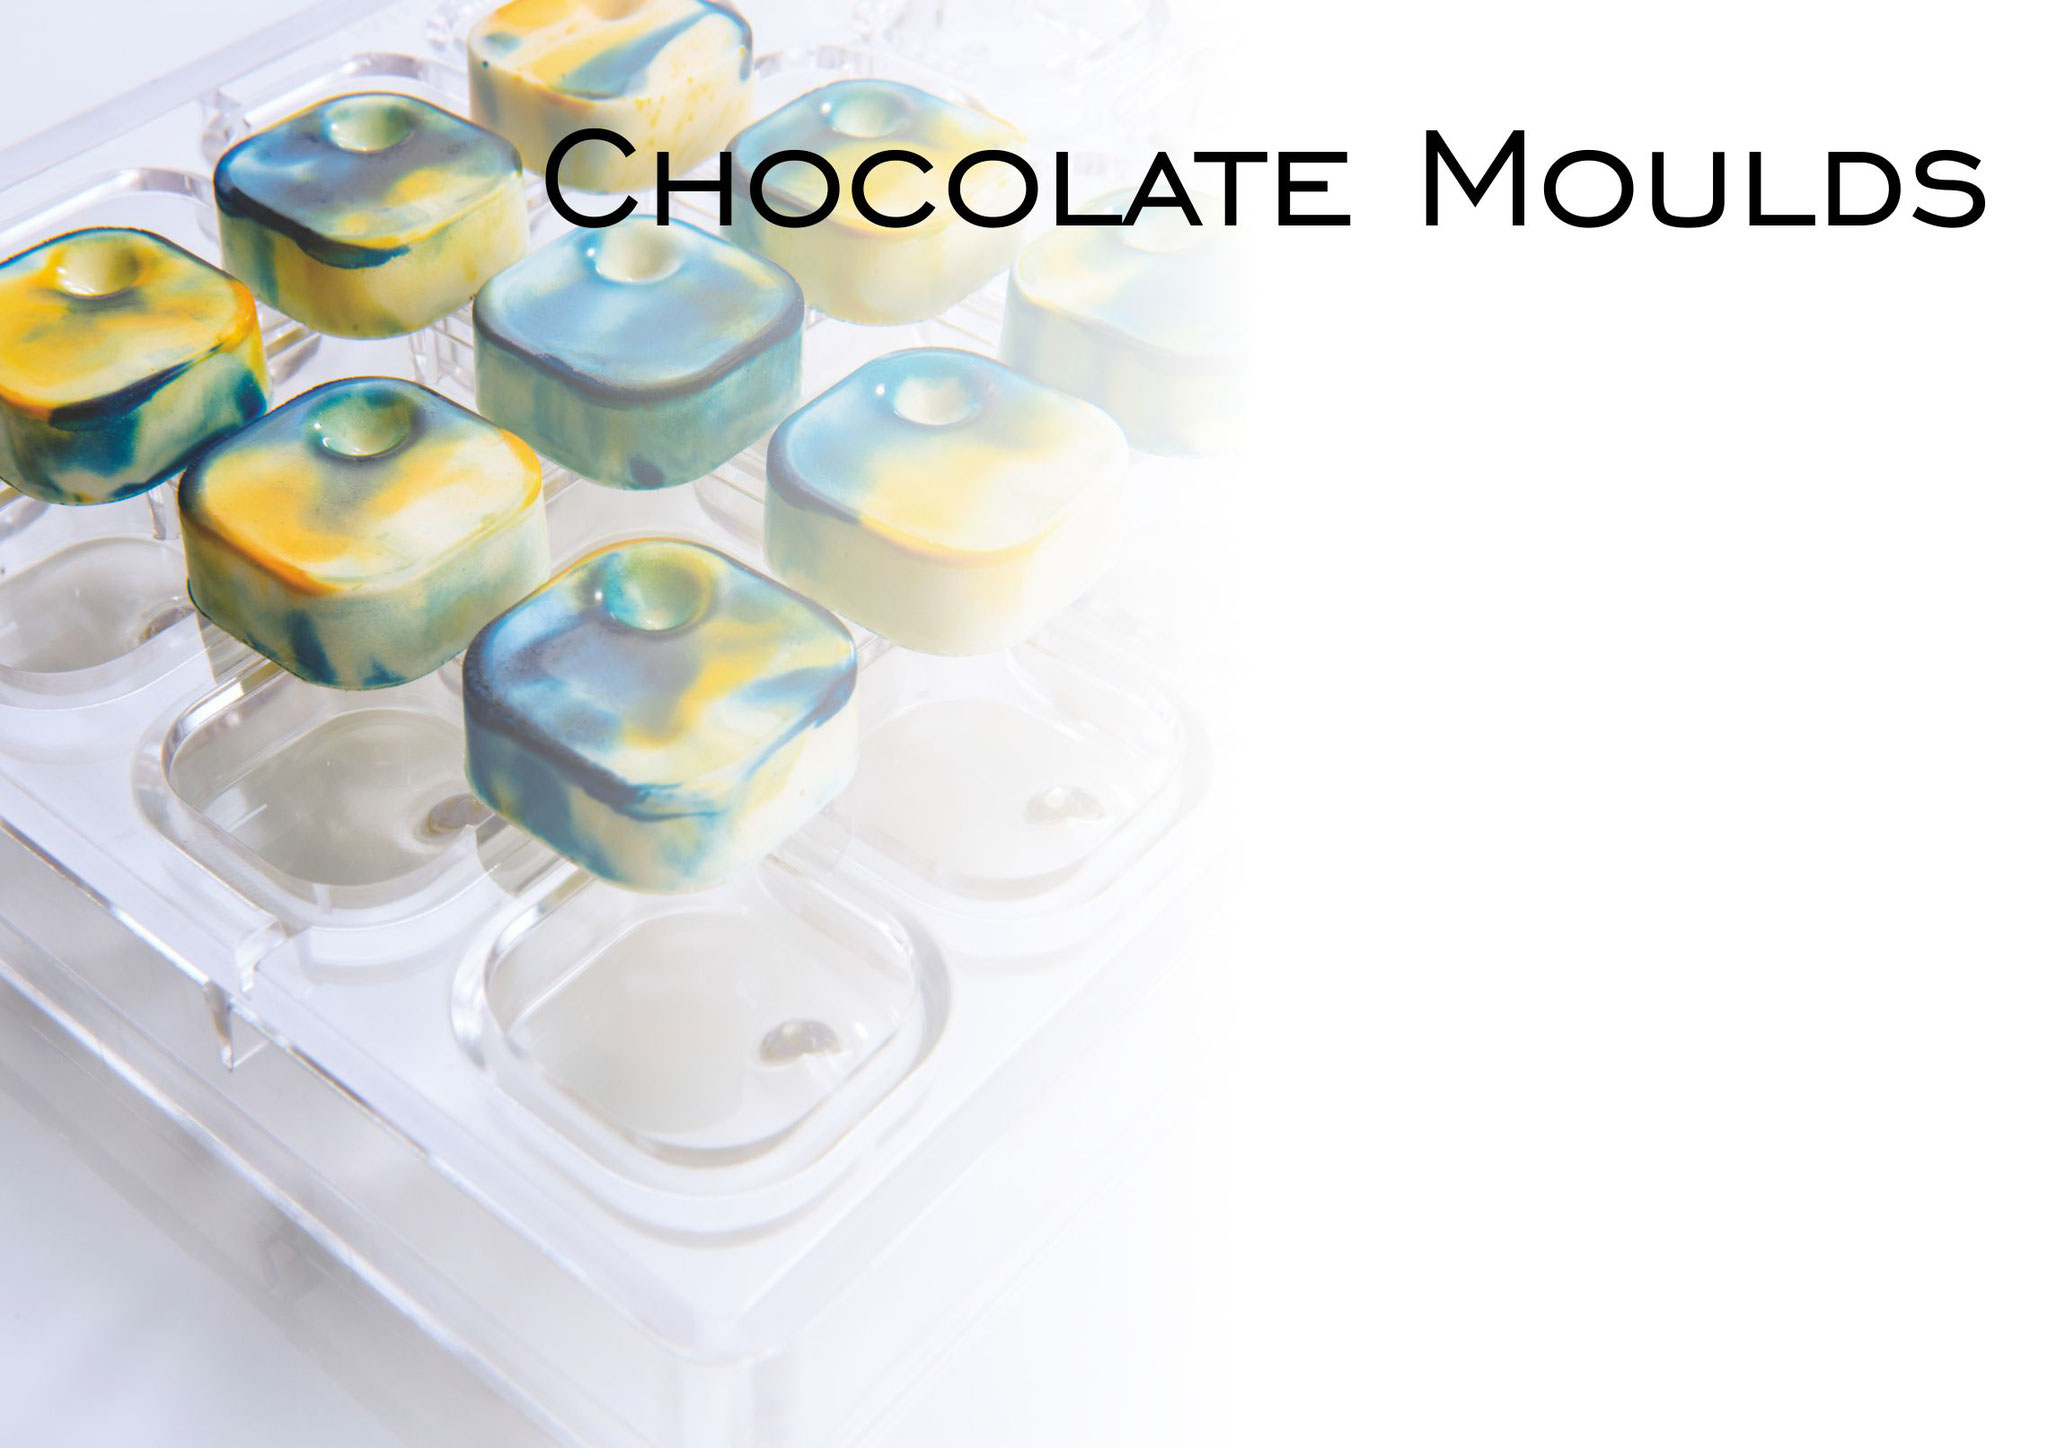 Chocolate Moulds